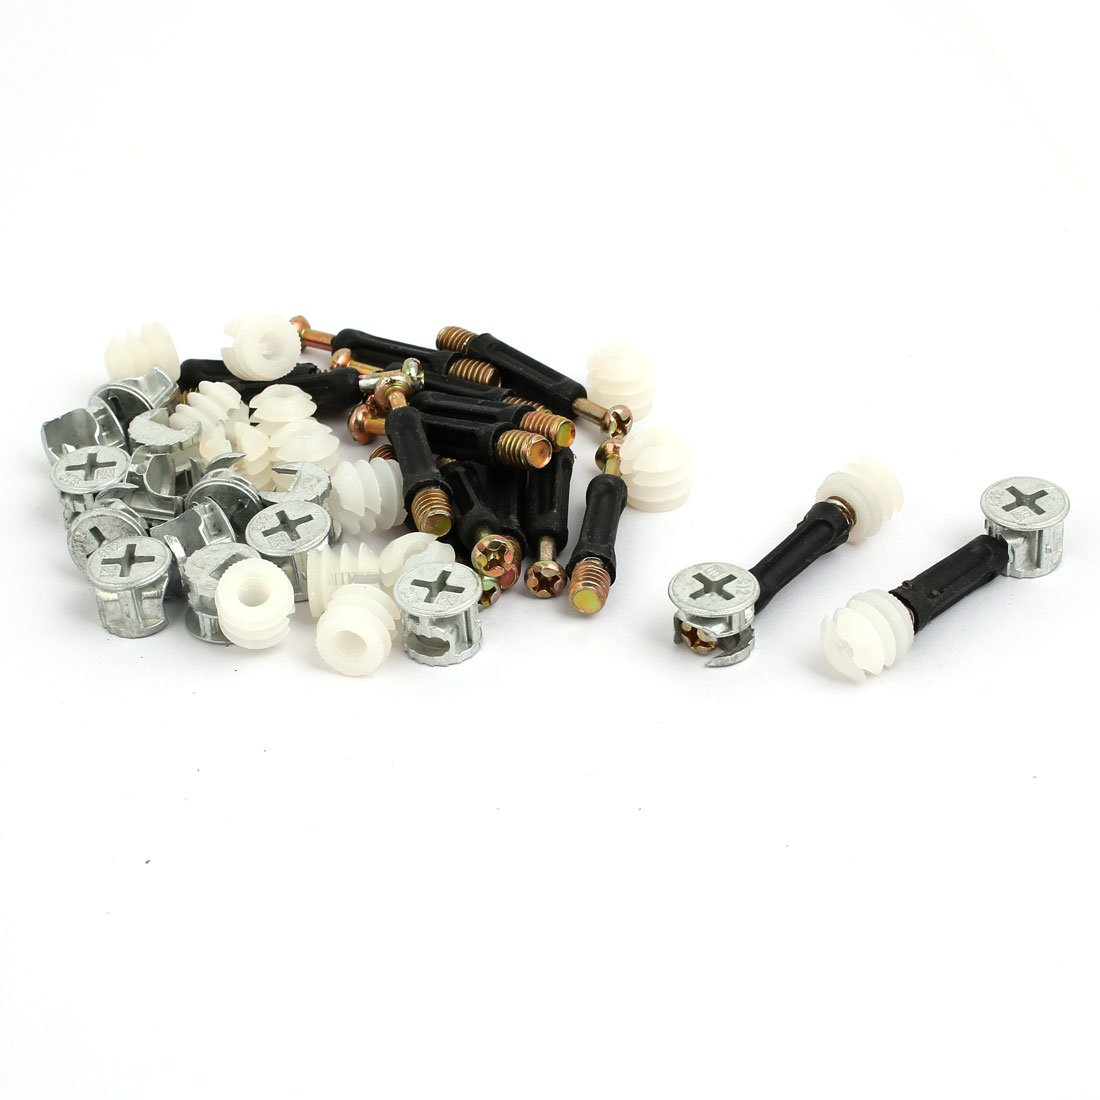 uxcellFurniture Board Fittings Connection Eccentric Wheel Nut 15 Sets US-SA-AJD-313626